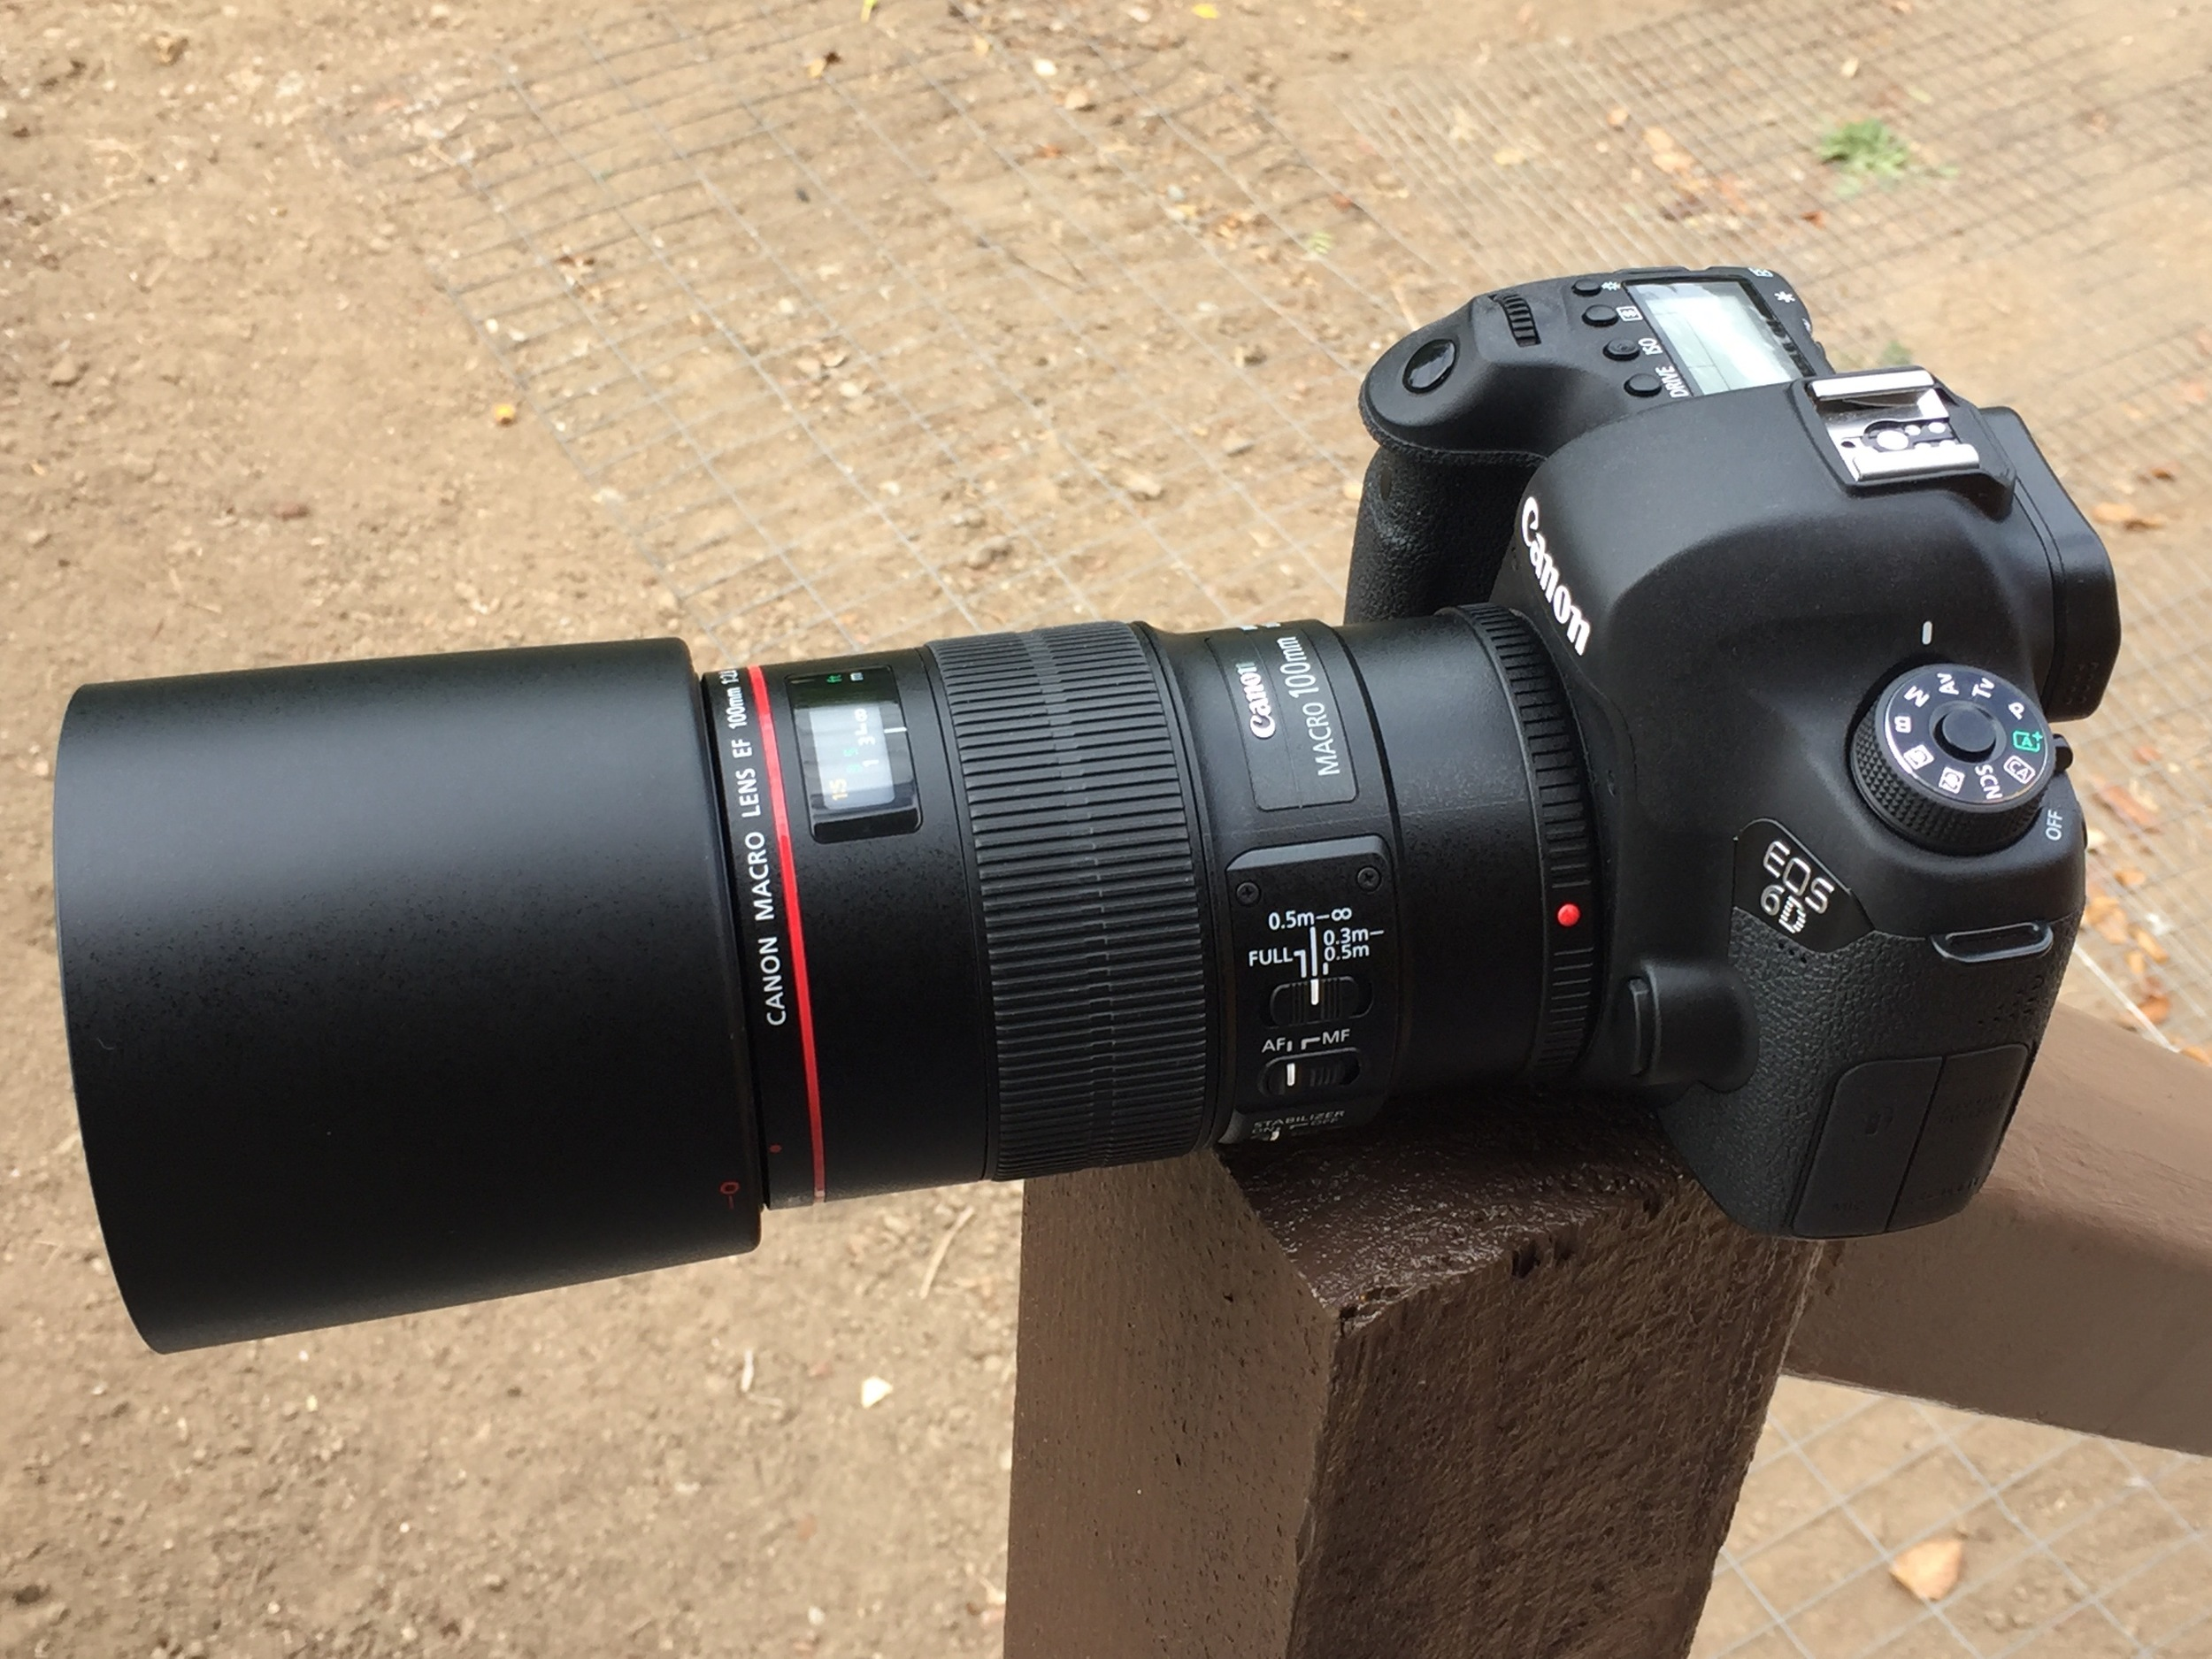 The Canon 100mm F2.8L IS Macro mounted on my 6D. While built of plastic, it feels modern and very well made. It is relatively large compared some shorter and squatter primes like my 50mm F1.4  or 85mm F1.8 but it still balances pretty well and feels great to shoot. The stabilizer seems to work very well. Even if you are shooting with strobes or high shutter speeds, it can be nice to have a stabilizer viewfinder to help with composition. Focus speed is very fast when you have the focus range limiter switch set to the correct setting for your subject. If you aren't shooting at macro distances, its best to keep it focussing from .5m-infinity so it doesn't spend any time hunting for focus at close range.